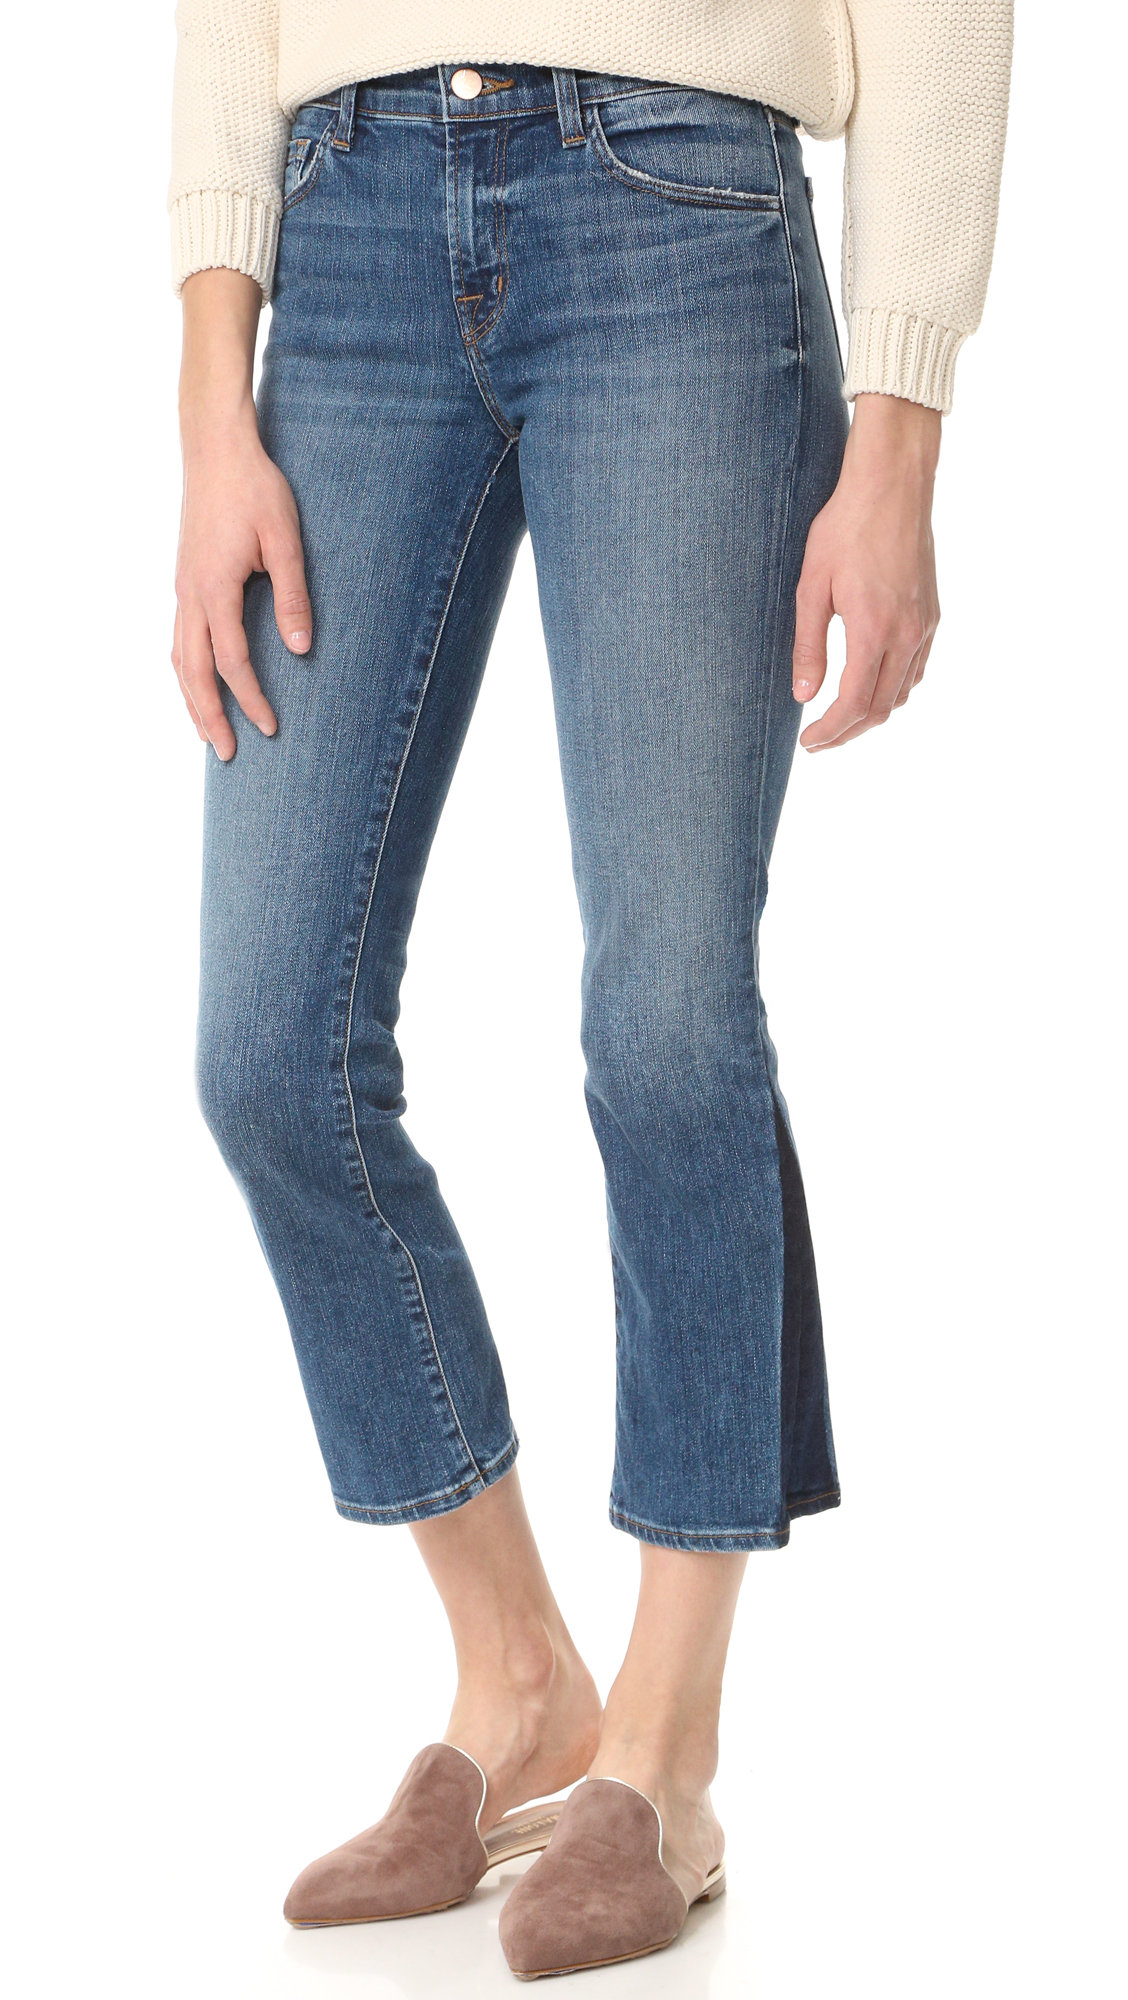 Inky overdye details the cuffs of these cropped J Brand boot cut jeans. 5 pocket styling. Button closure and zip fly. Fabric: Stretch denim. 98% cotton/2% polyurethane. Wash cold. Made in the USA. Imported materials. Measurements Rise: 9in / 23